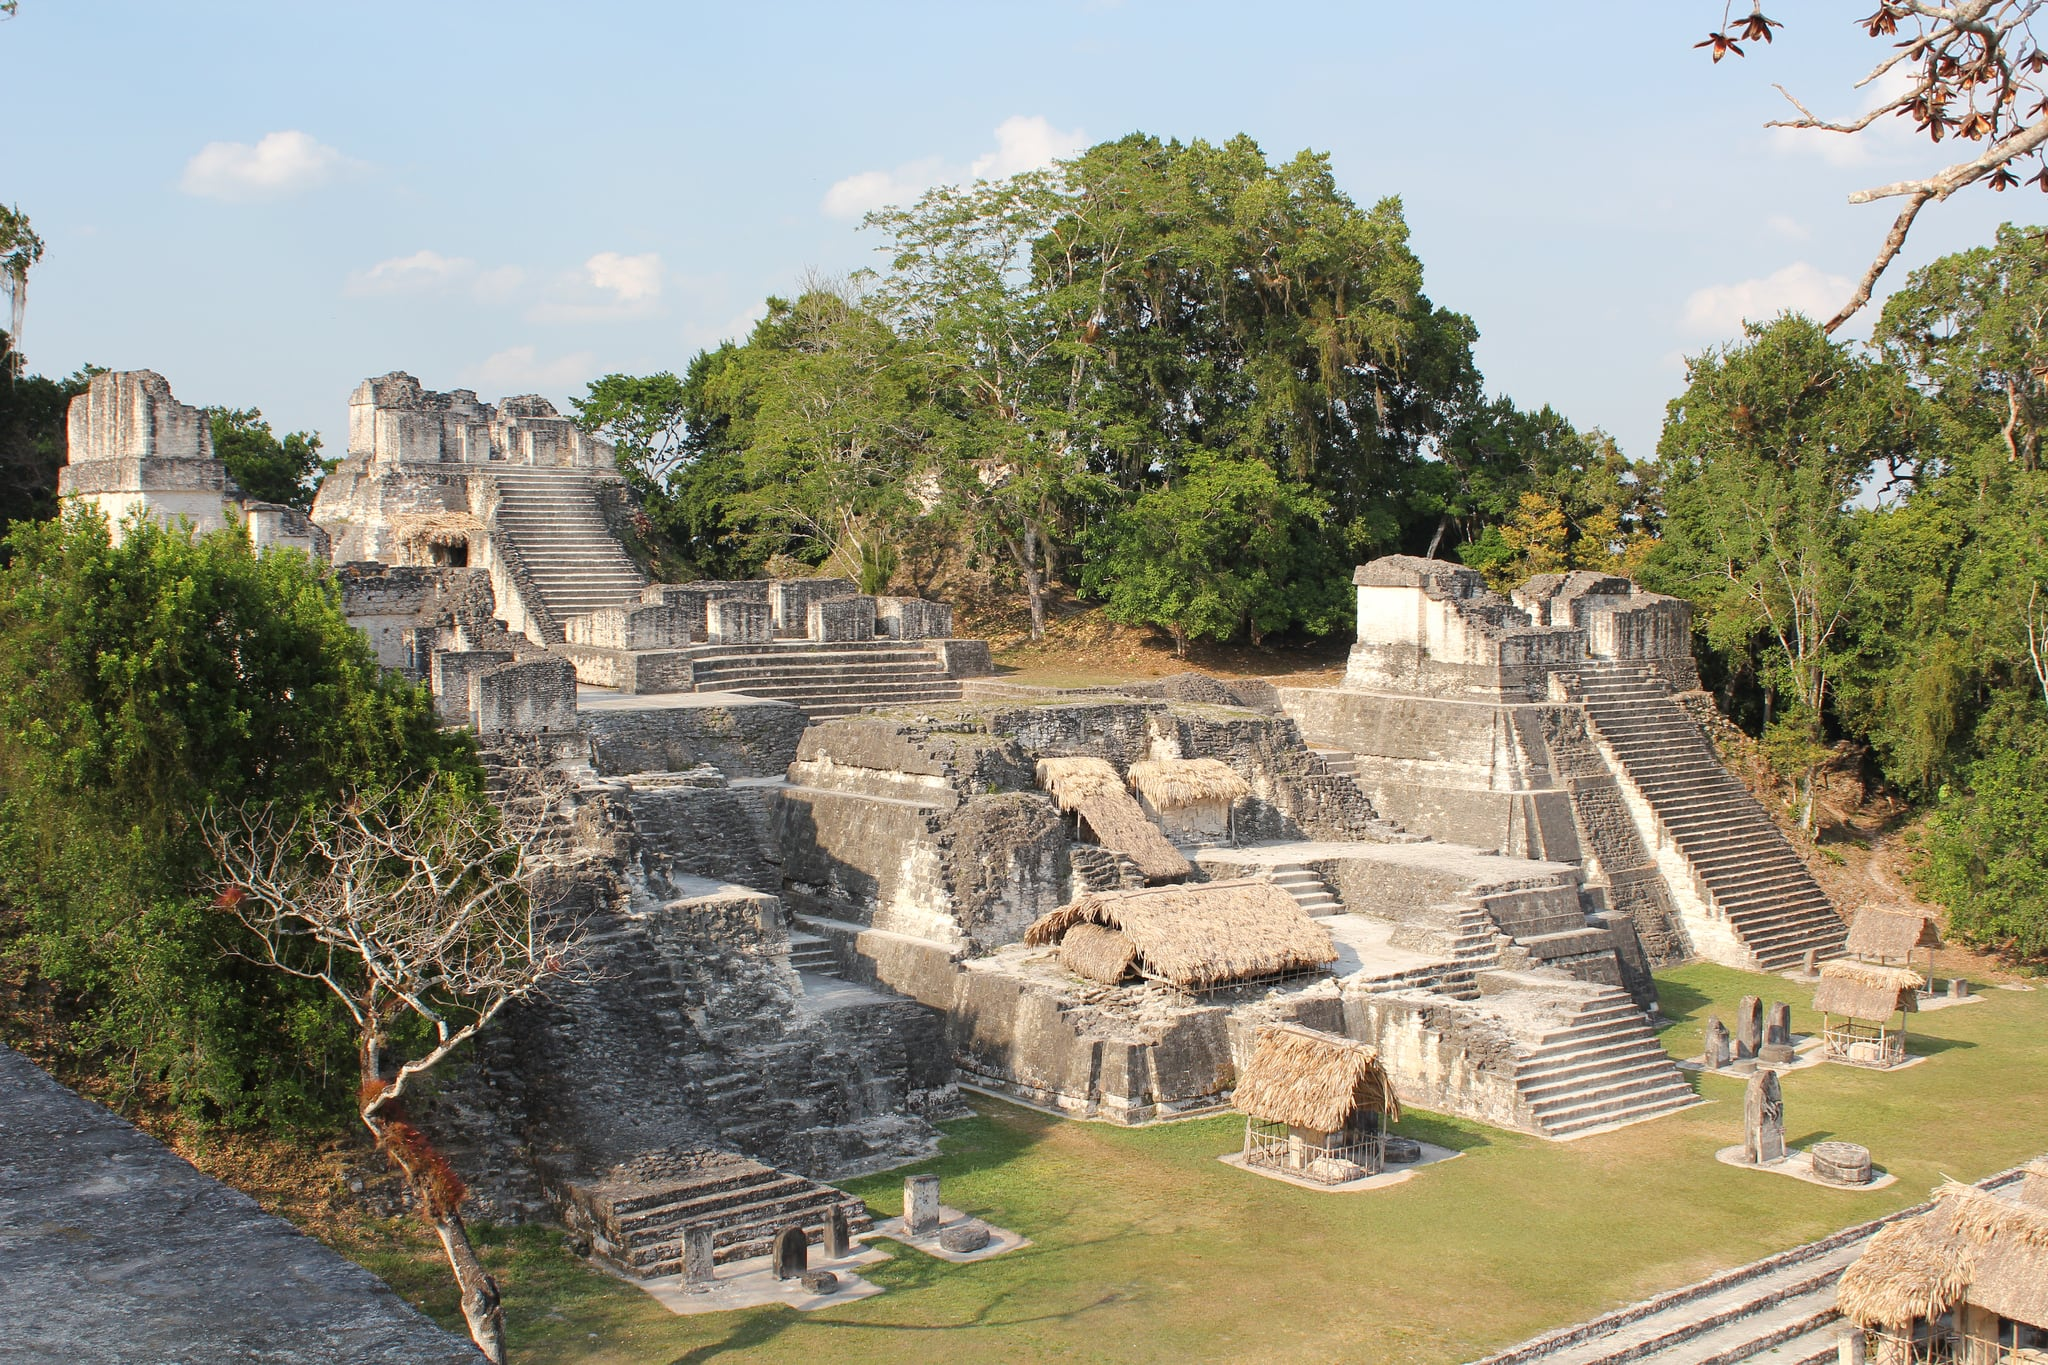 Изображение на North Acropolis. tikal northacropolis acropolis ruins ancientcity city rainforest archaeologicalsite site urbancenter precolumbian mayacivilization maya peténbasin elpetén tikalnationalpark nationalpark capital conqueststate kingdom ancientmaya monumentalarchitecture architecture classicperiod teotihuacan lowlandmaya lowland rulers tombs monuments temples palaces pyramids architecturalcomplex royalnecropolis necropolis royaltombs kings yaxnuunayiini siyajchankawiilii wakchankawiil animalskull yaxehbxook stelae stela altar hieroglyphs stairs temple pyramid guatemala mayapyramid mayanpyramid mesoamericanpyramid unescoworldheritagelist unescoworldheritage unesco worldheritagelist worldheritage heritage worldheritagesite 2014